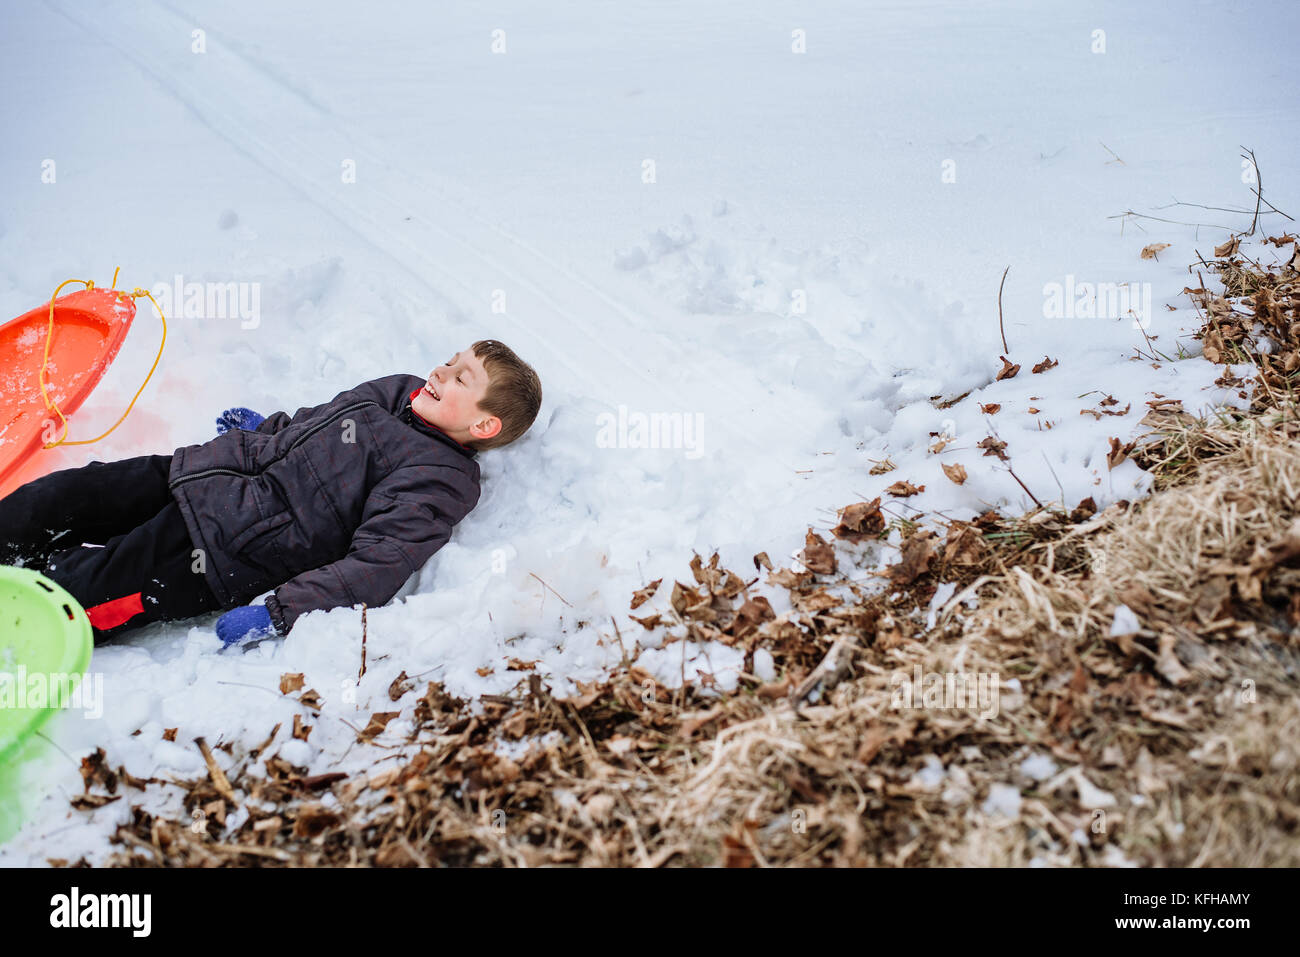 Boy laying in the snow - Stock Image